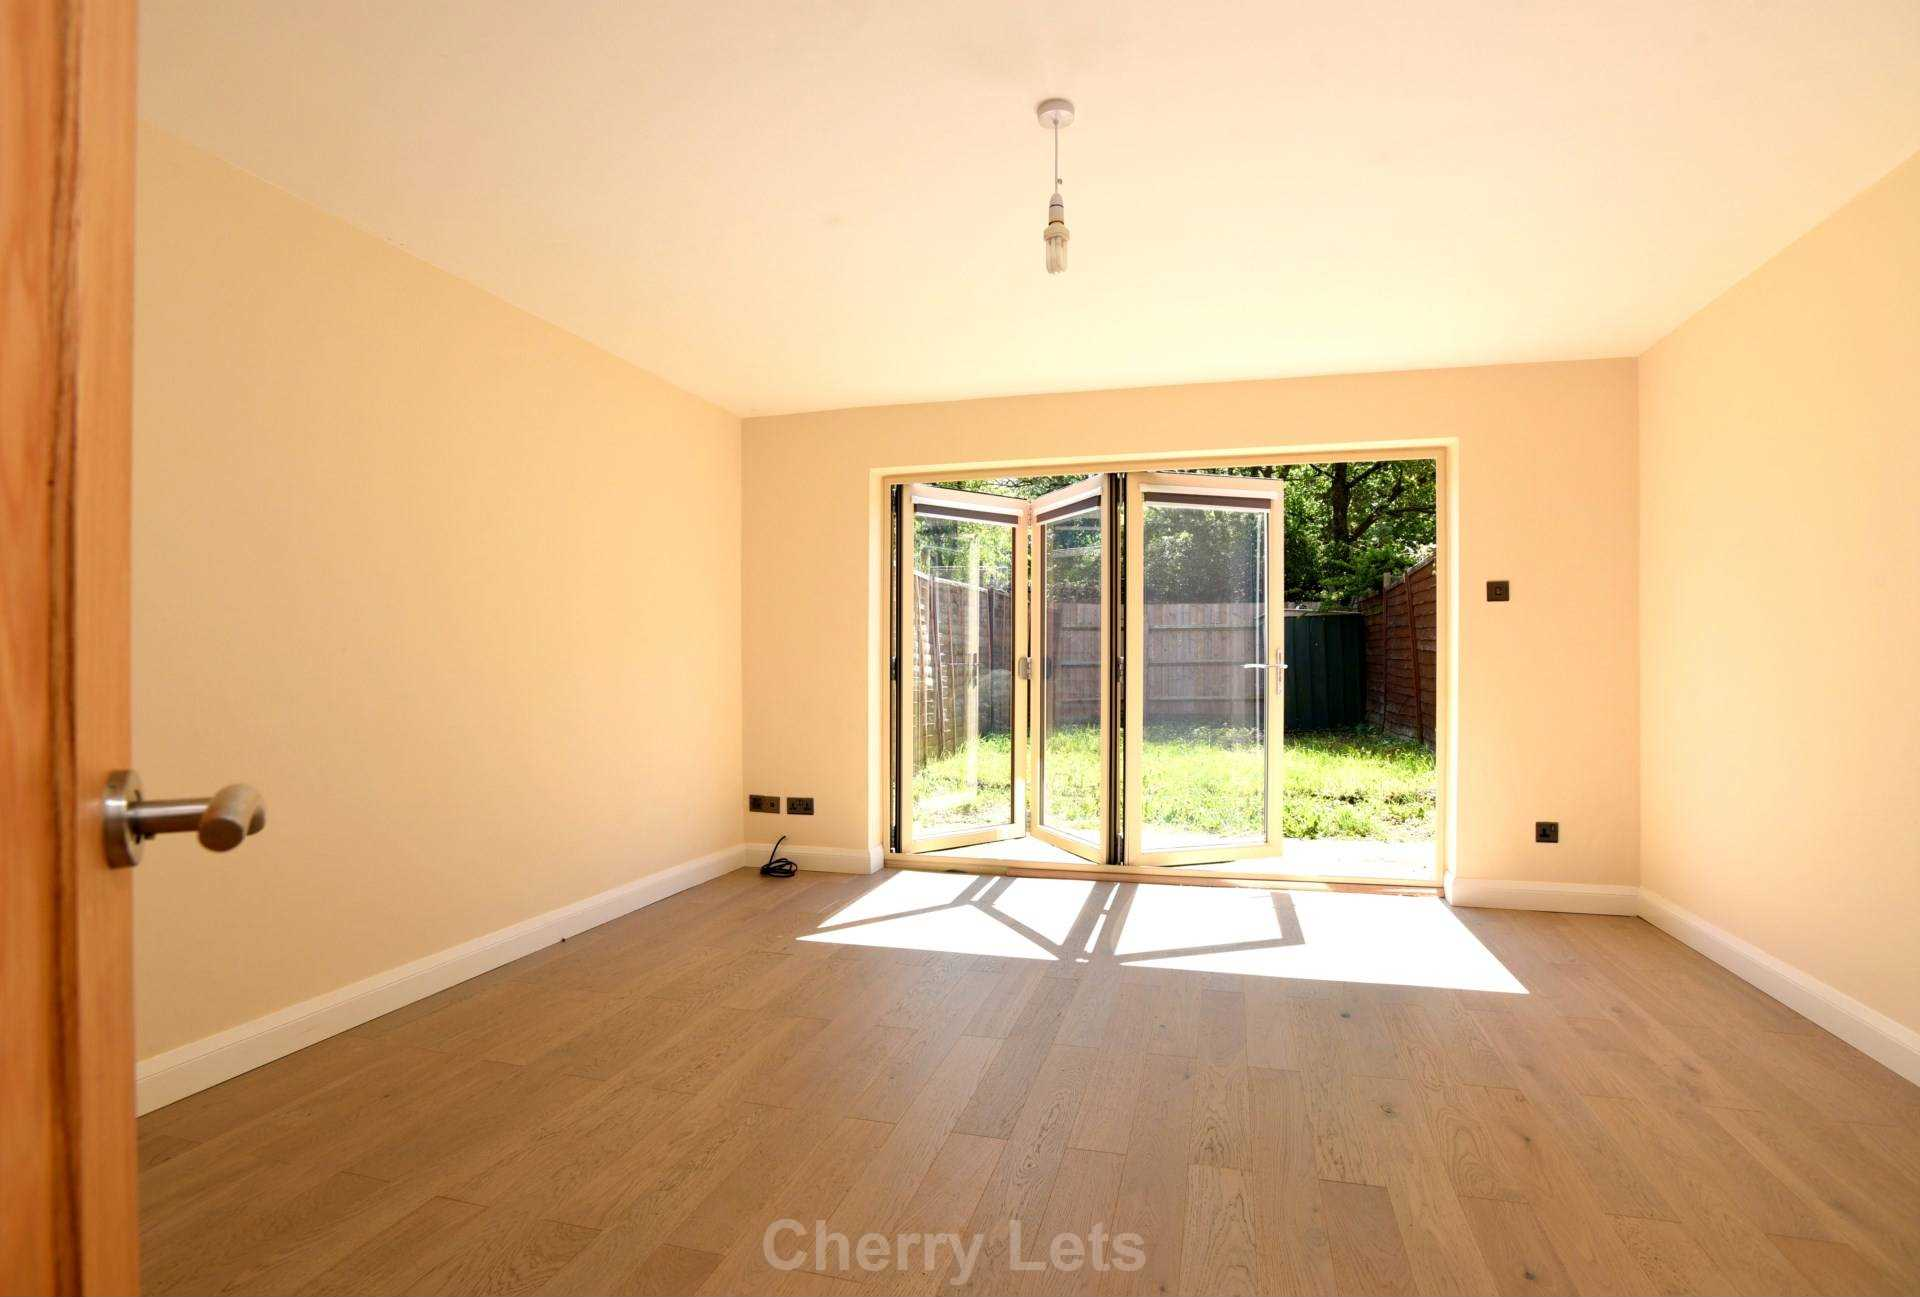 3 bed terraced house to rent in Keytes Close, Adderbury, OX17  - Property Image 4